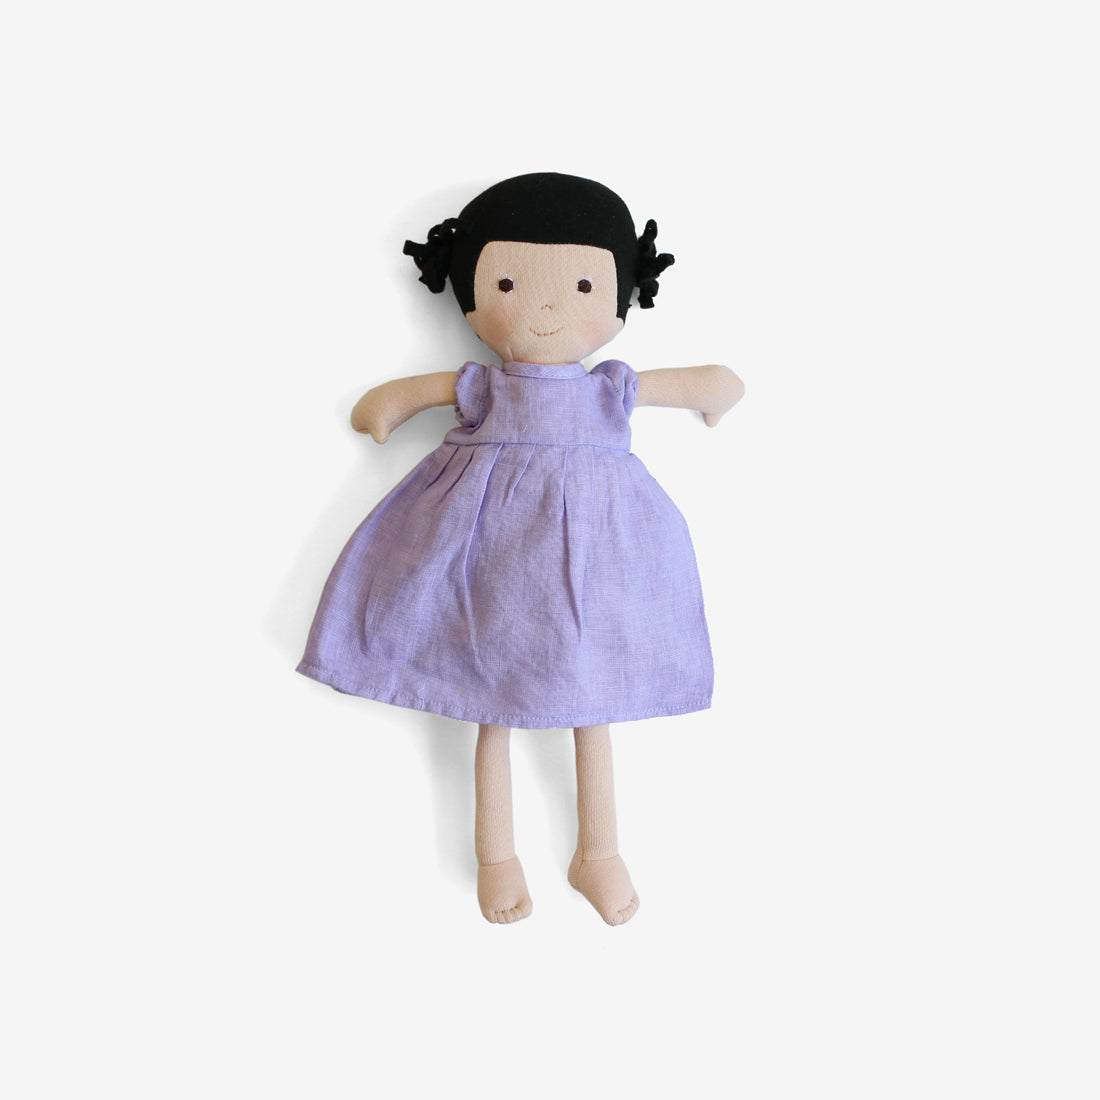 Nell Dolly in Wisteria Linen Dress